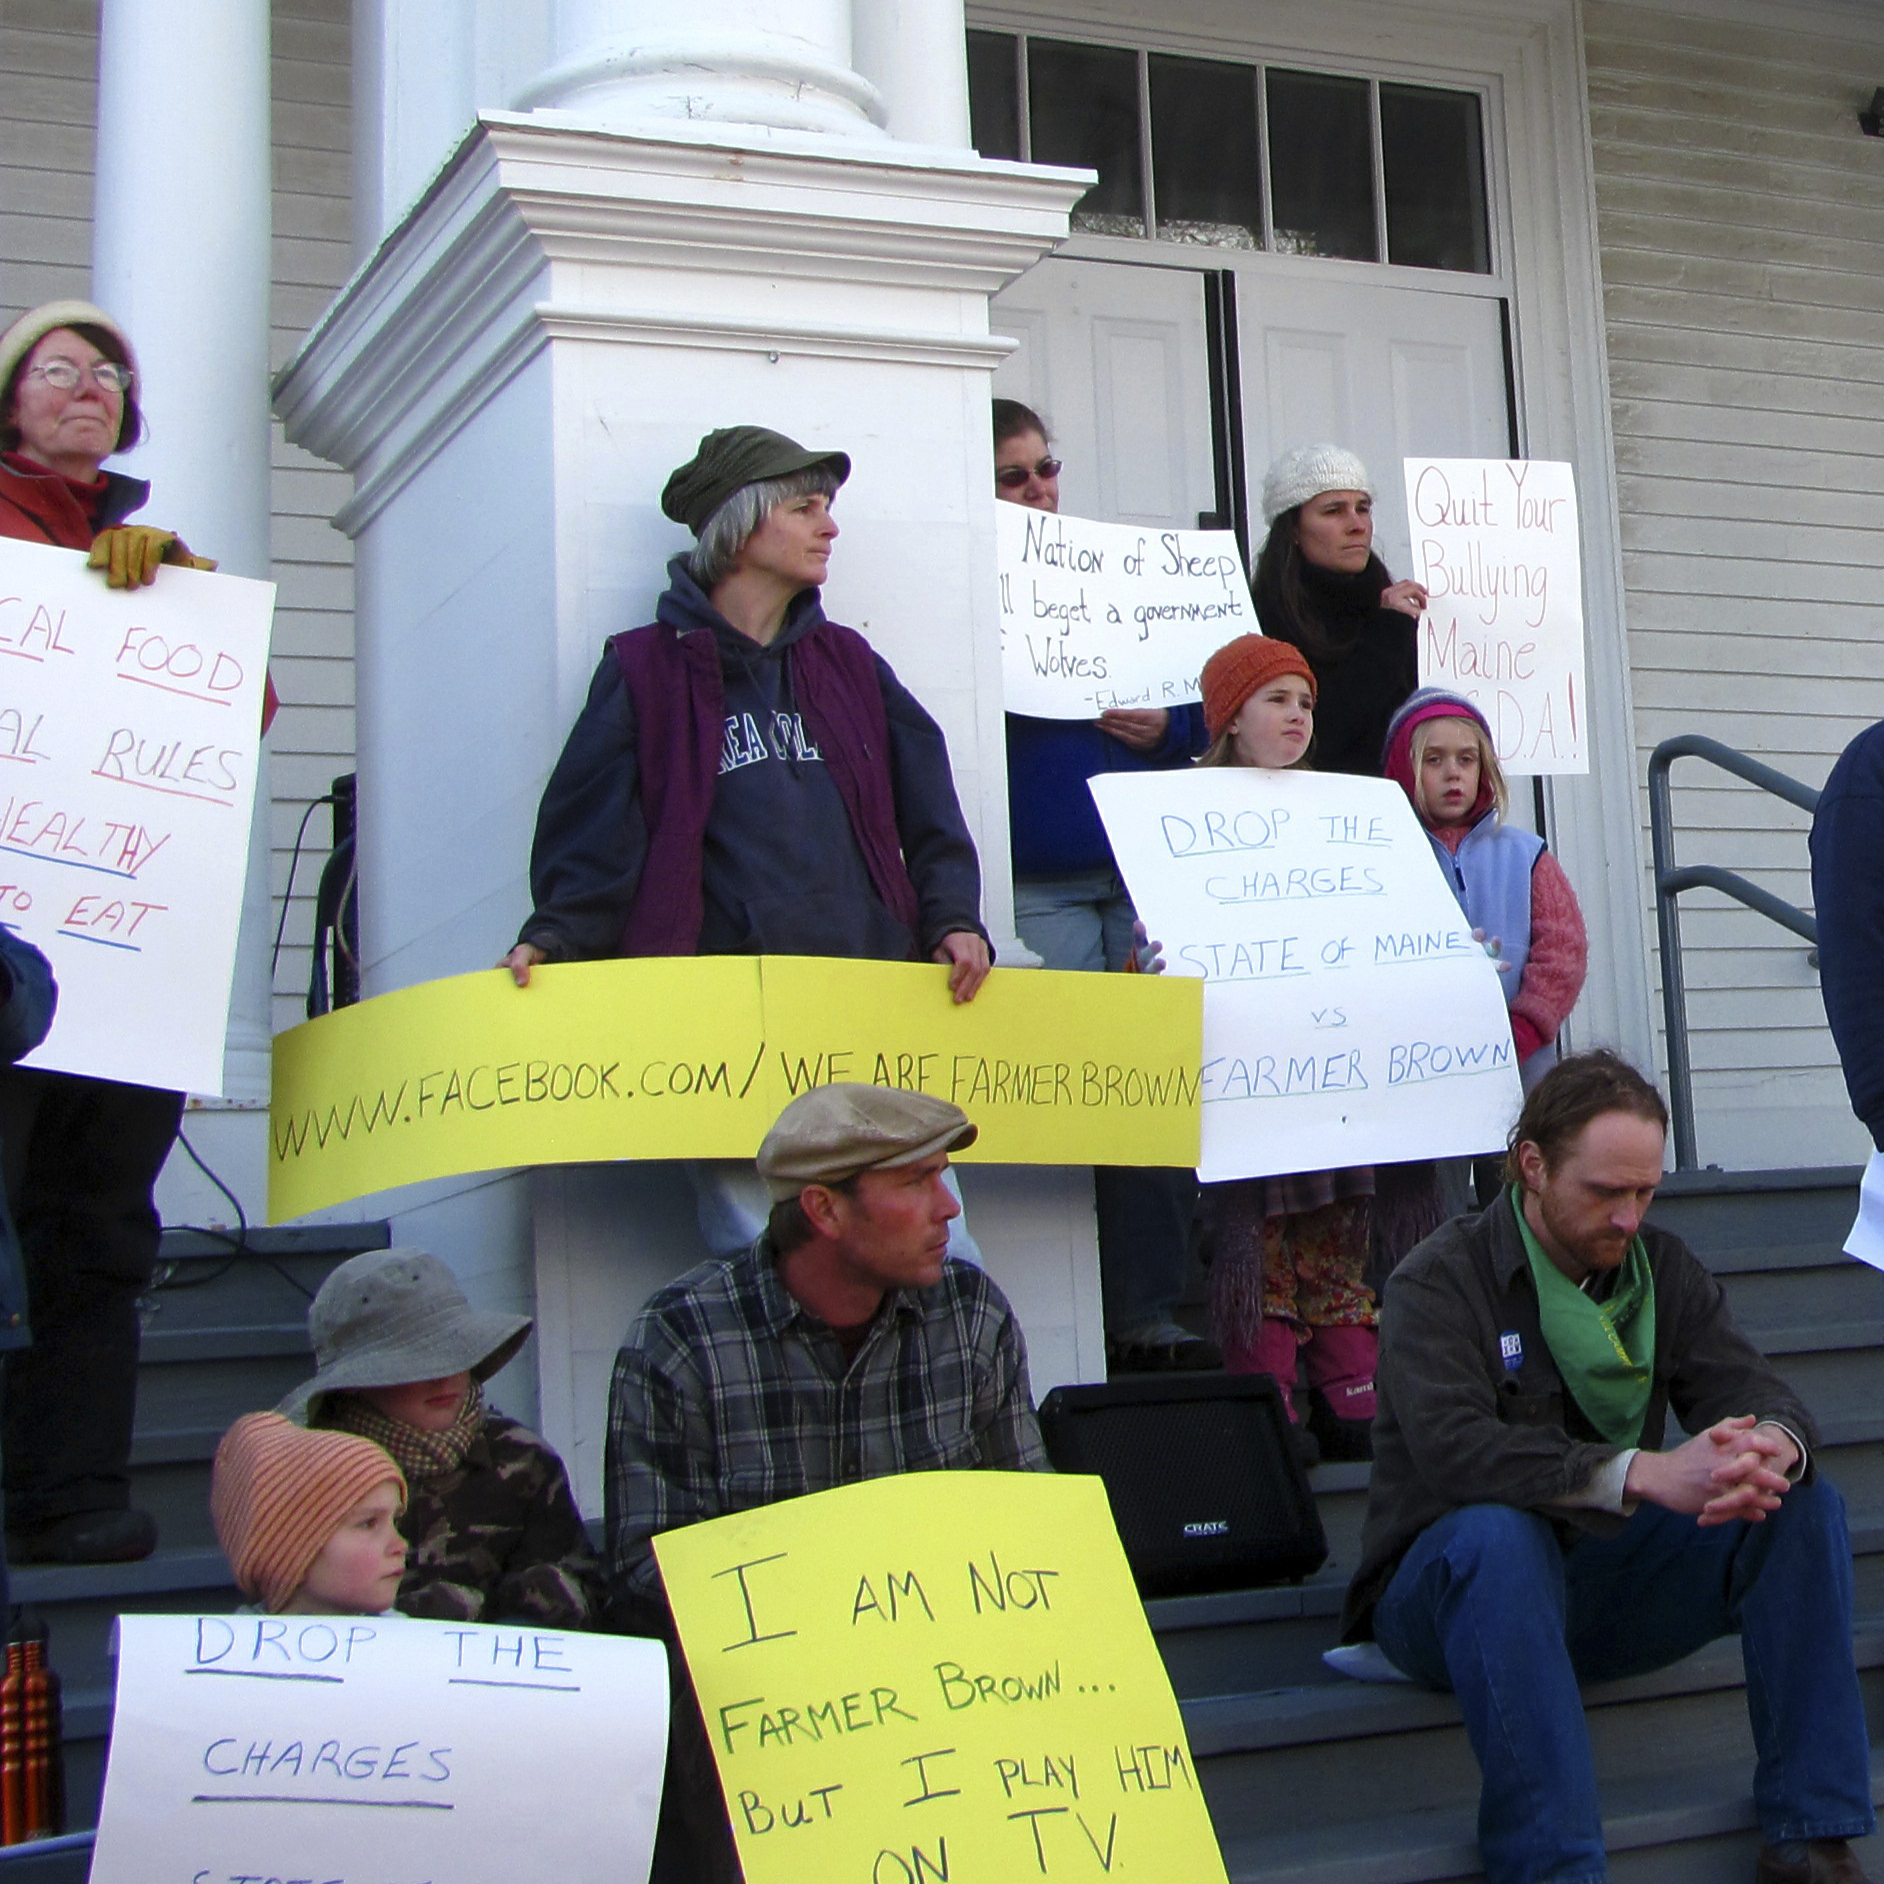 More than 150 people gather to hear farmer Dan Brown speak in 2011. The Maine Department of Agriculture filed suit against Brown, alleging that he was illegally selling unpasteurized milk without a license. Brown, meanwhile, insisted that a local food ordinance adopted by Blue Hill residents protects the rights of farmers to sell directly to consumers without a license.